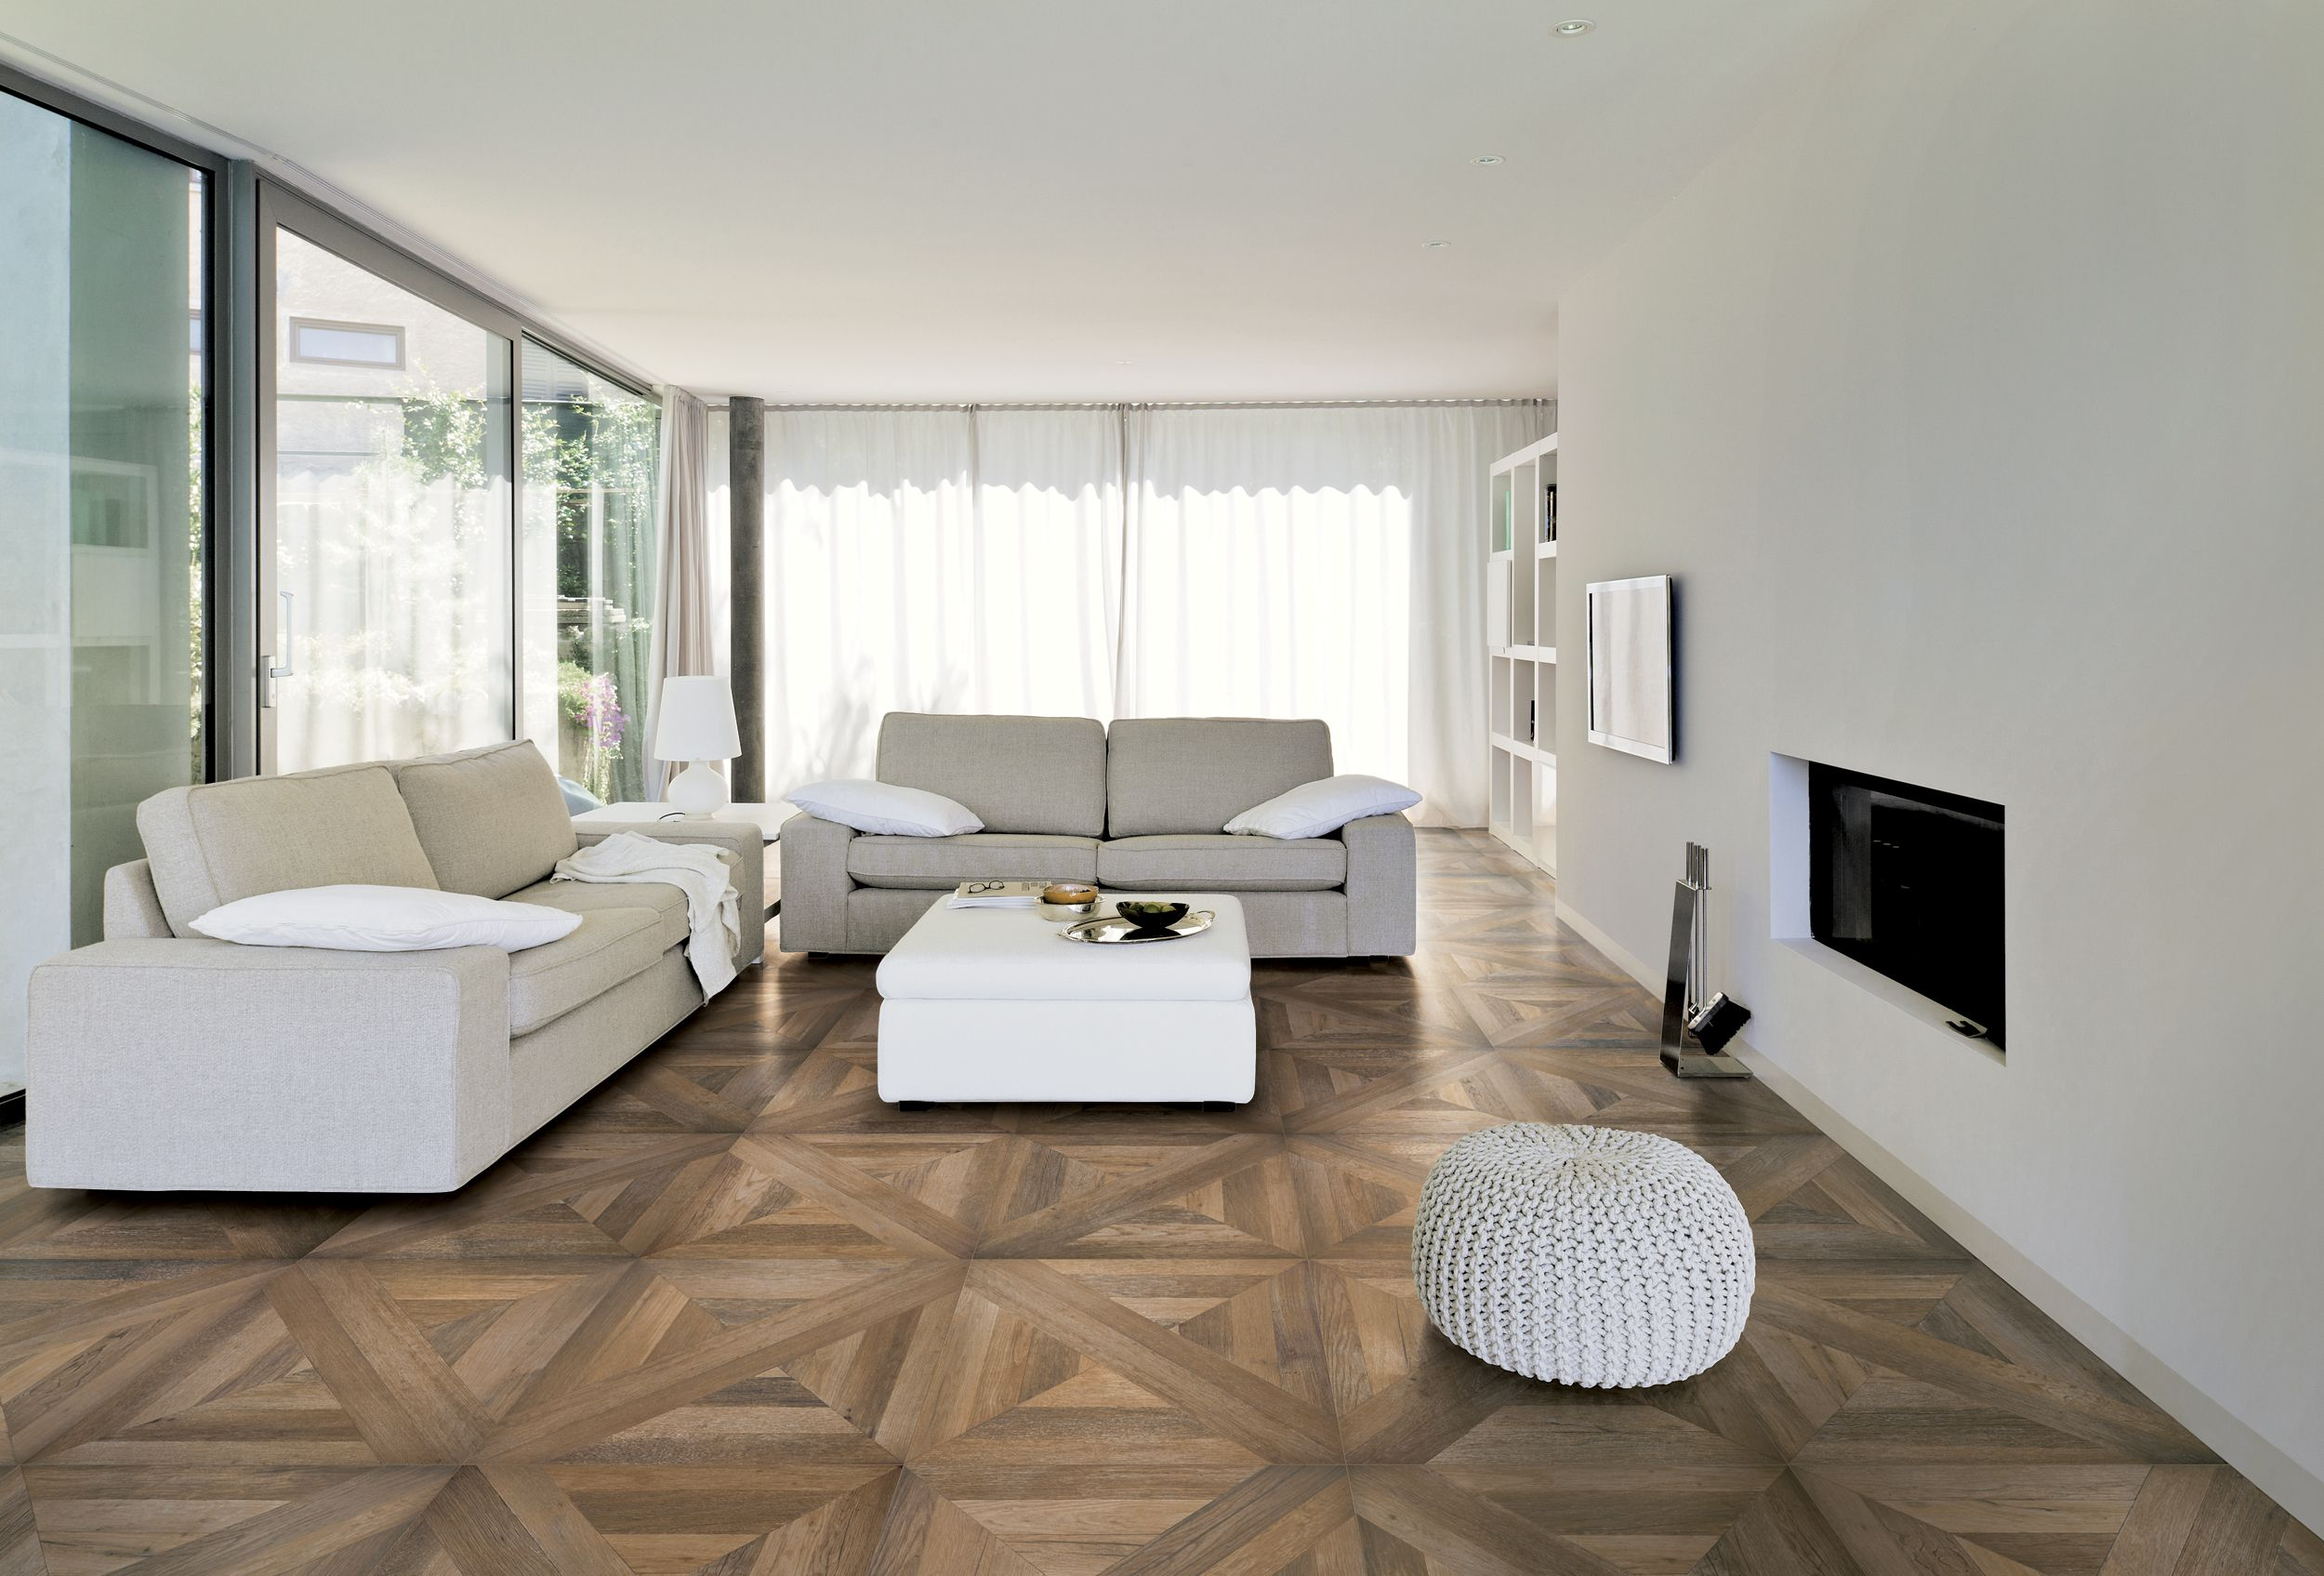 Mansion Arcade Ceramiche Refin S P A Porcelain Stoneware Tiles That Look Like French Versailles Living Room Flooring Living Room Designs Floor Tile Design #tiles #designs #for #living #room